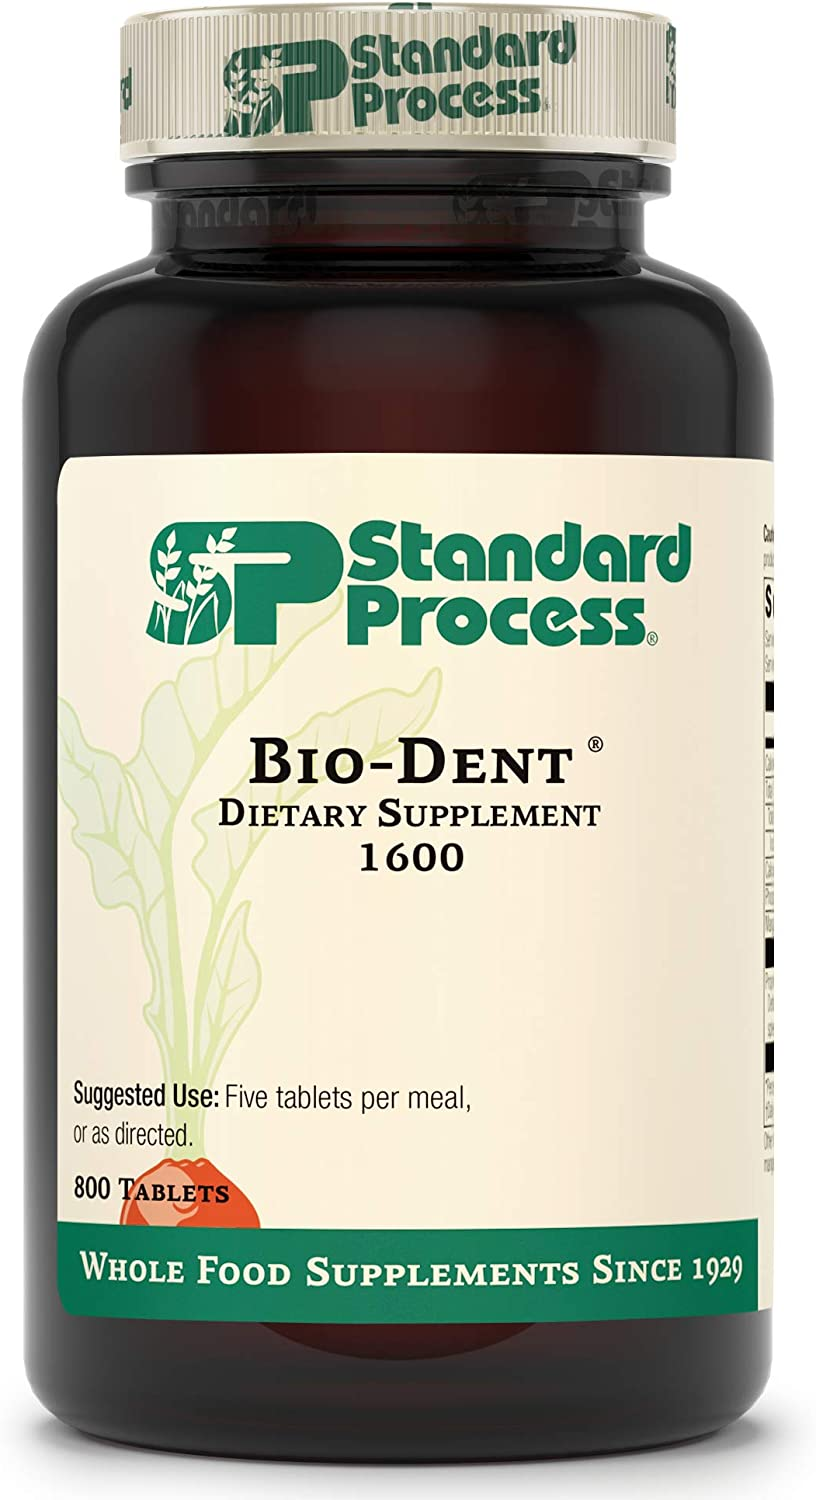 Standard Process Bio-Dent - Whole Food Supplement for Skin, Muscle, and Bone Health - Calcium, Licorice Root, Manganese, Phosphorus, and More - 800 Tablets